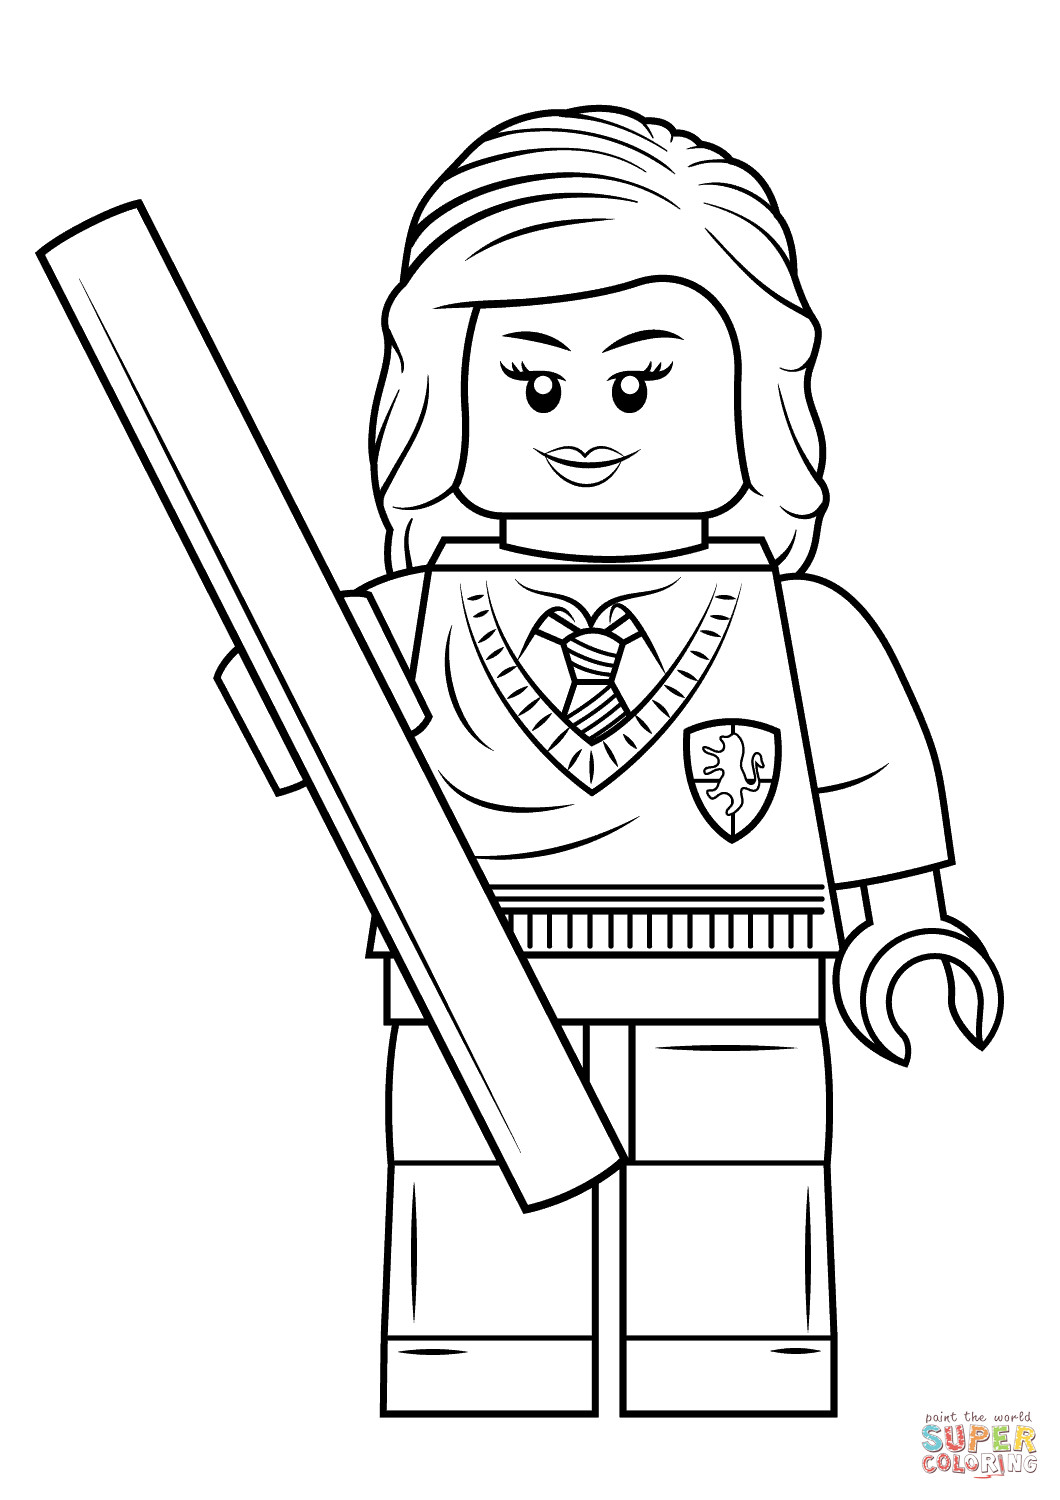 Printable Lego Coloring Sheets For Girls  Lego Hermione Granger coloring page